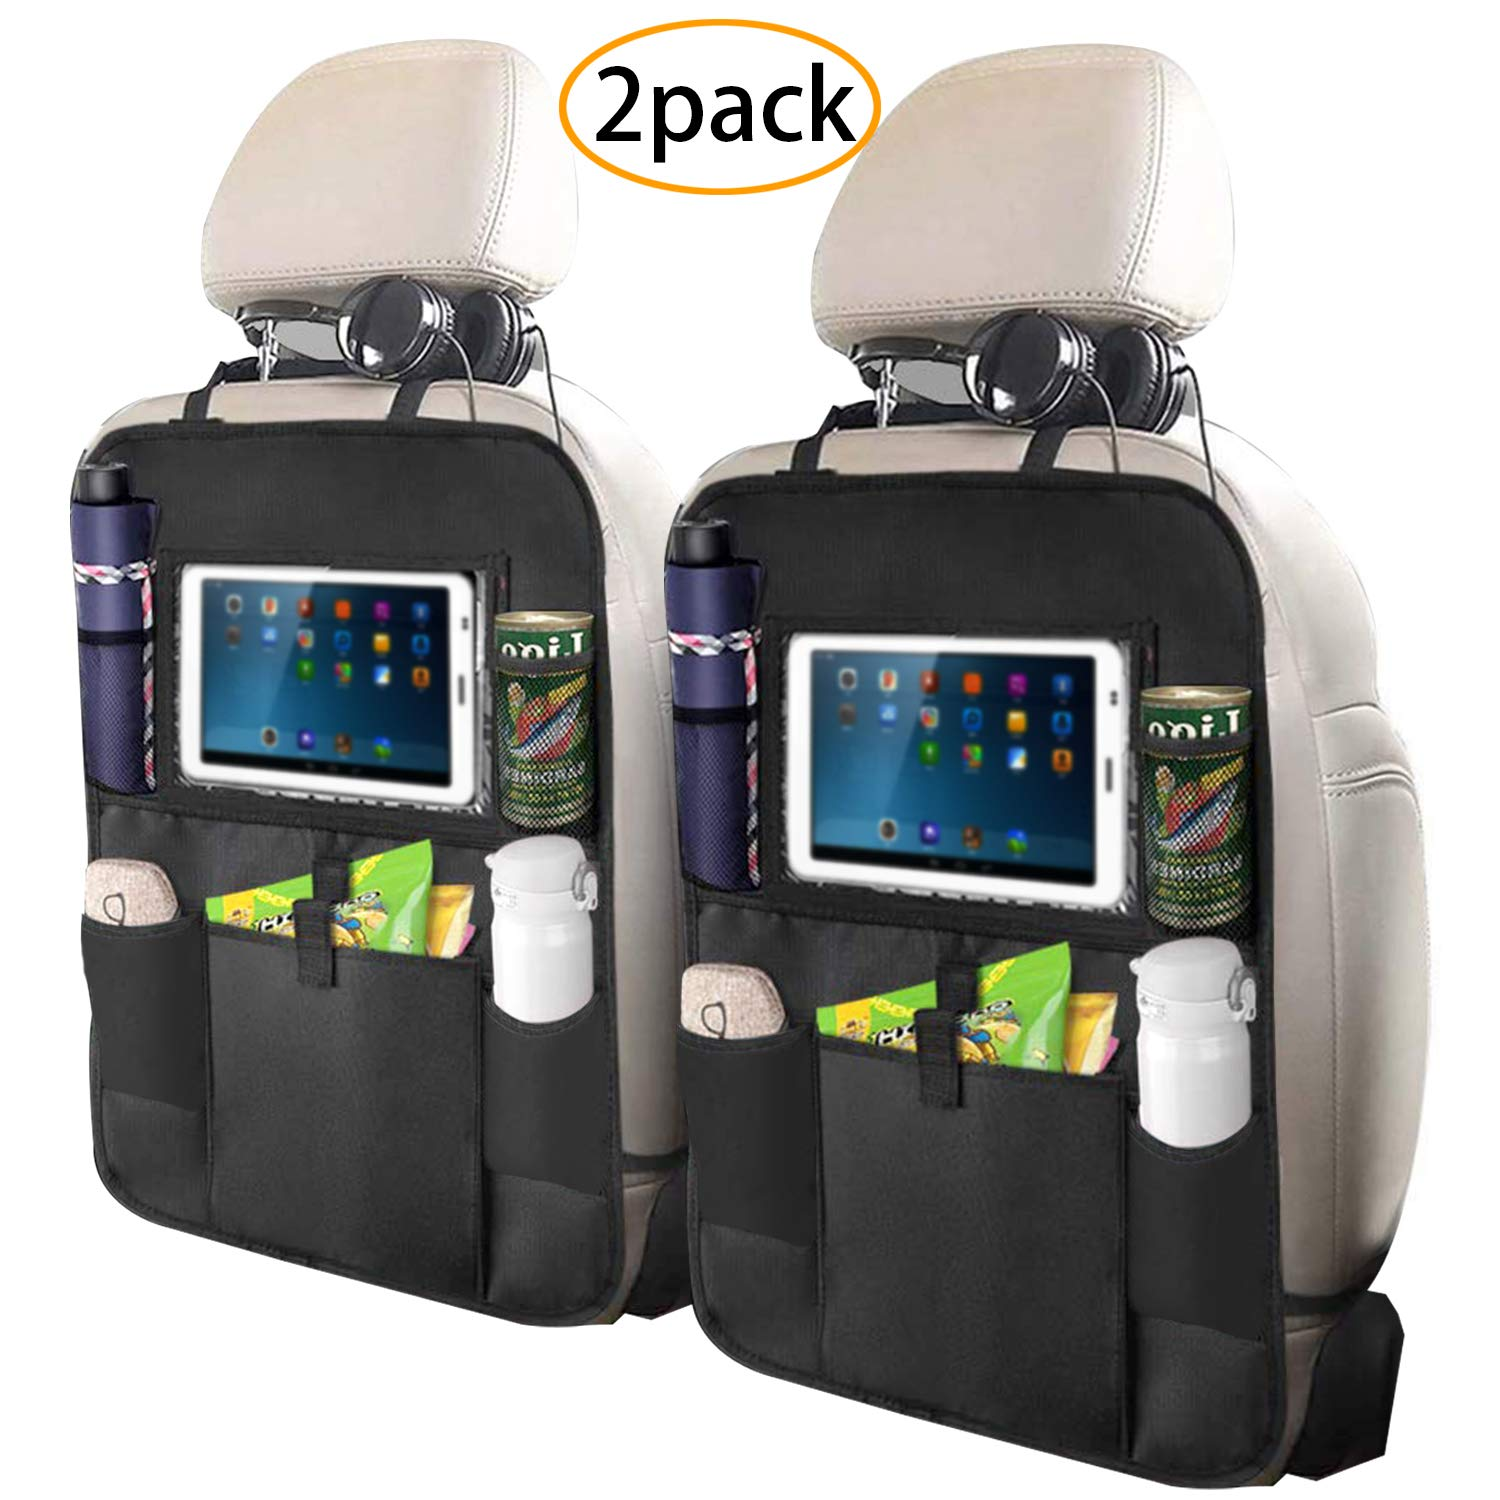 Fullsexy 2 Pack Car Back Seat Organizer with Touch Screen Tablet Holder, Waterproof Kick Mats Backseat Protector with 5 Storage Pockets for Kids (25'' X 18'') by Fullsexy